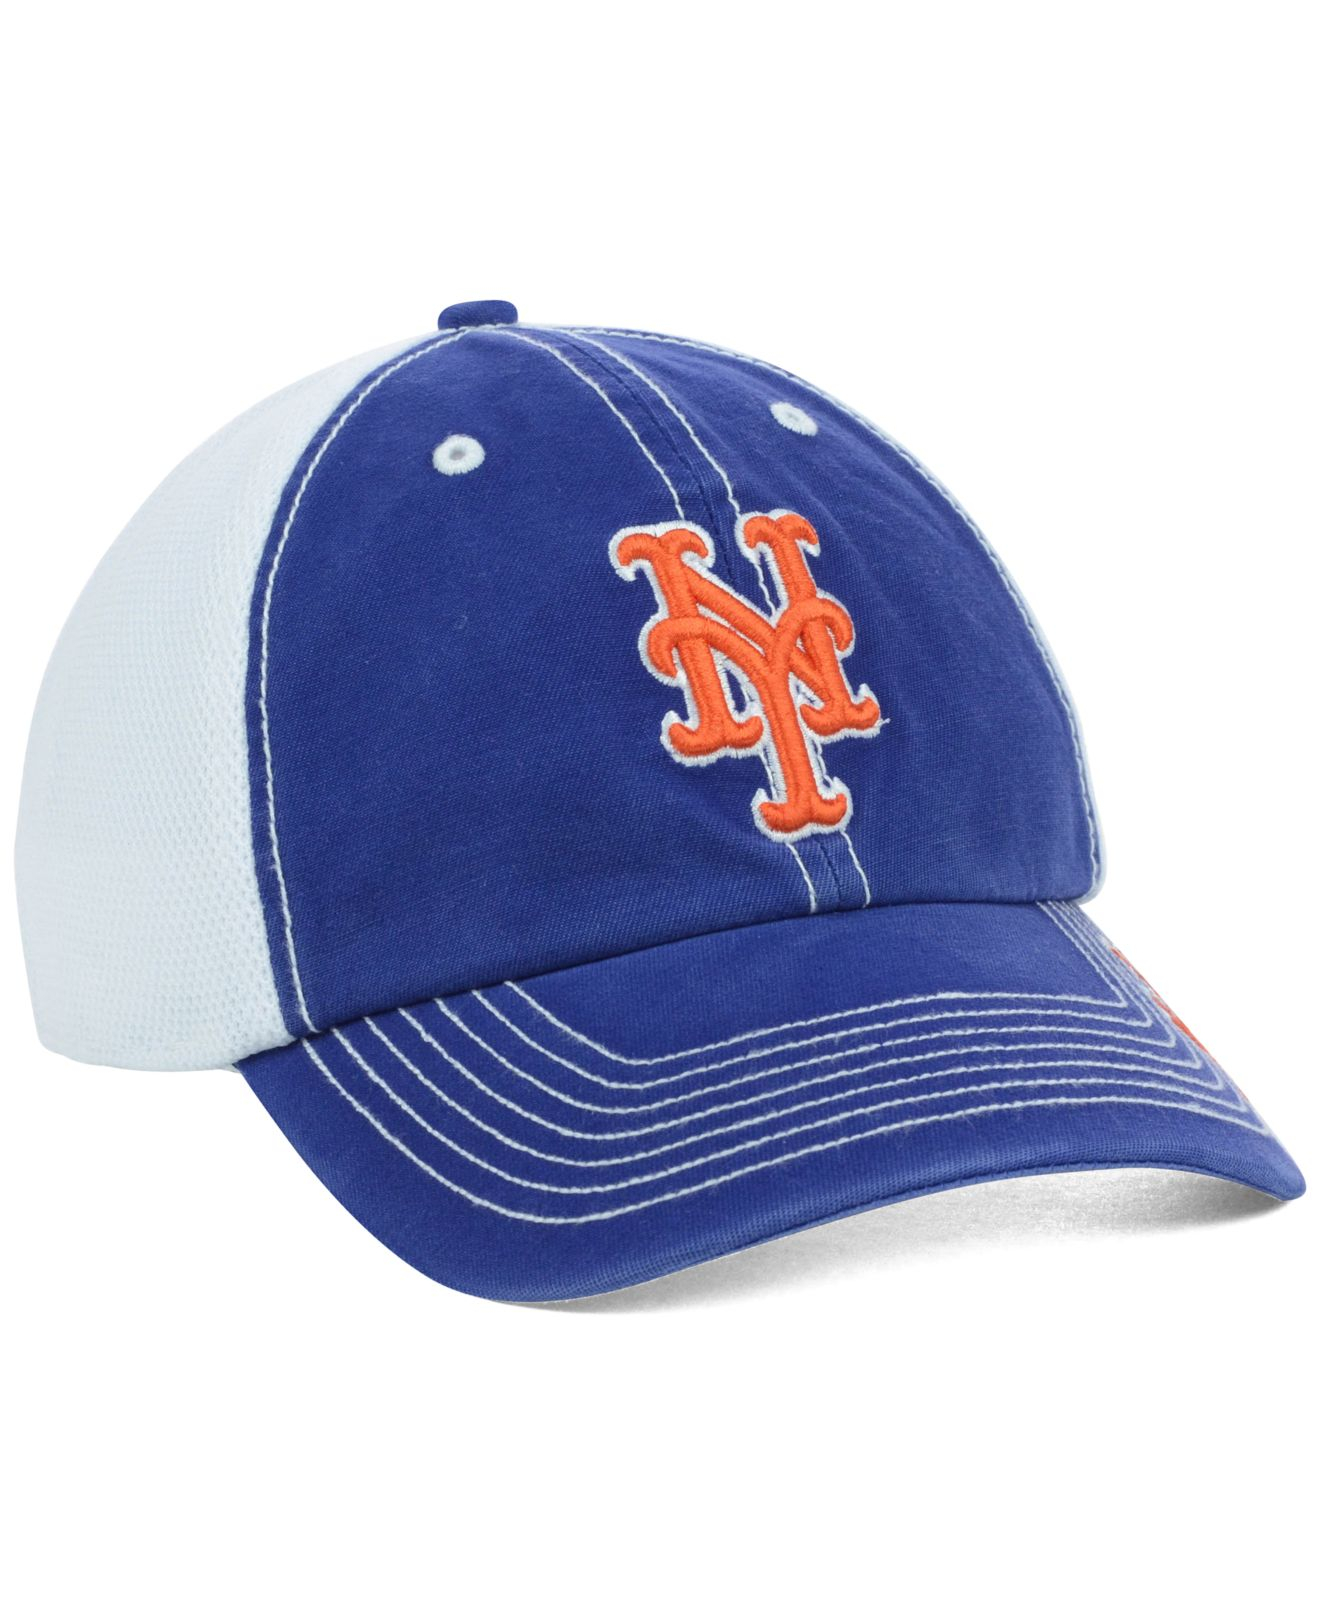 spain new york mets hats 47 year olds 0a5db 5d88a 5f1550b5b4